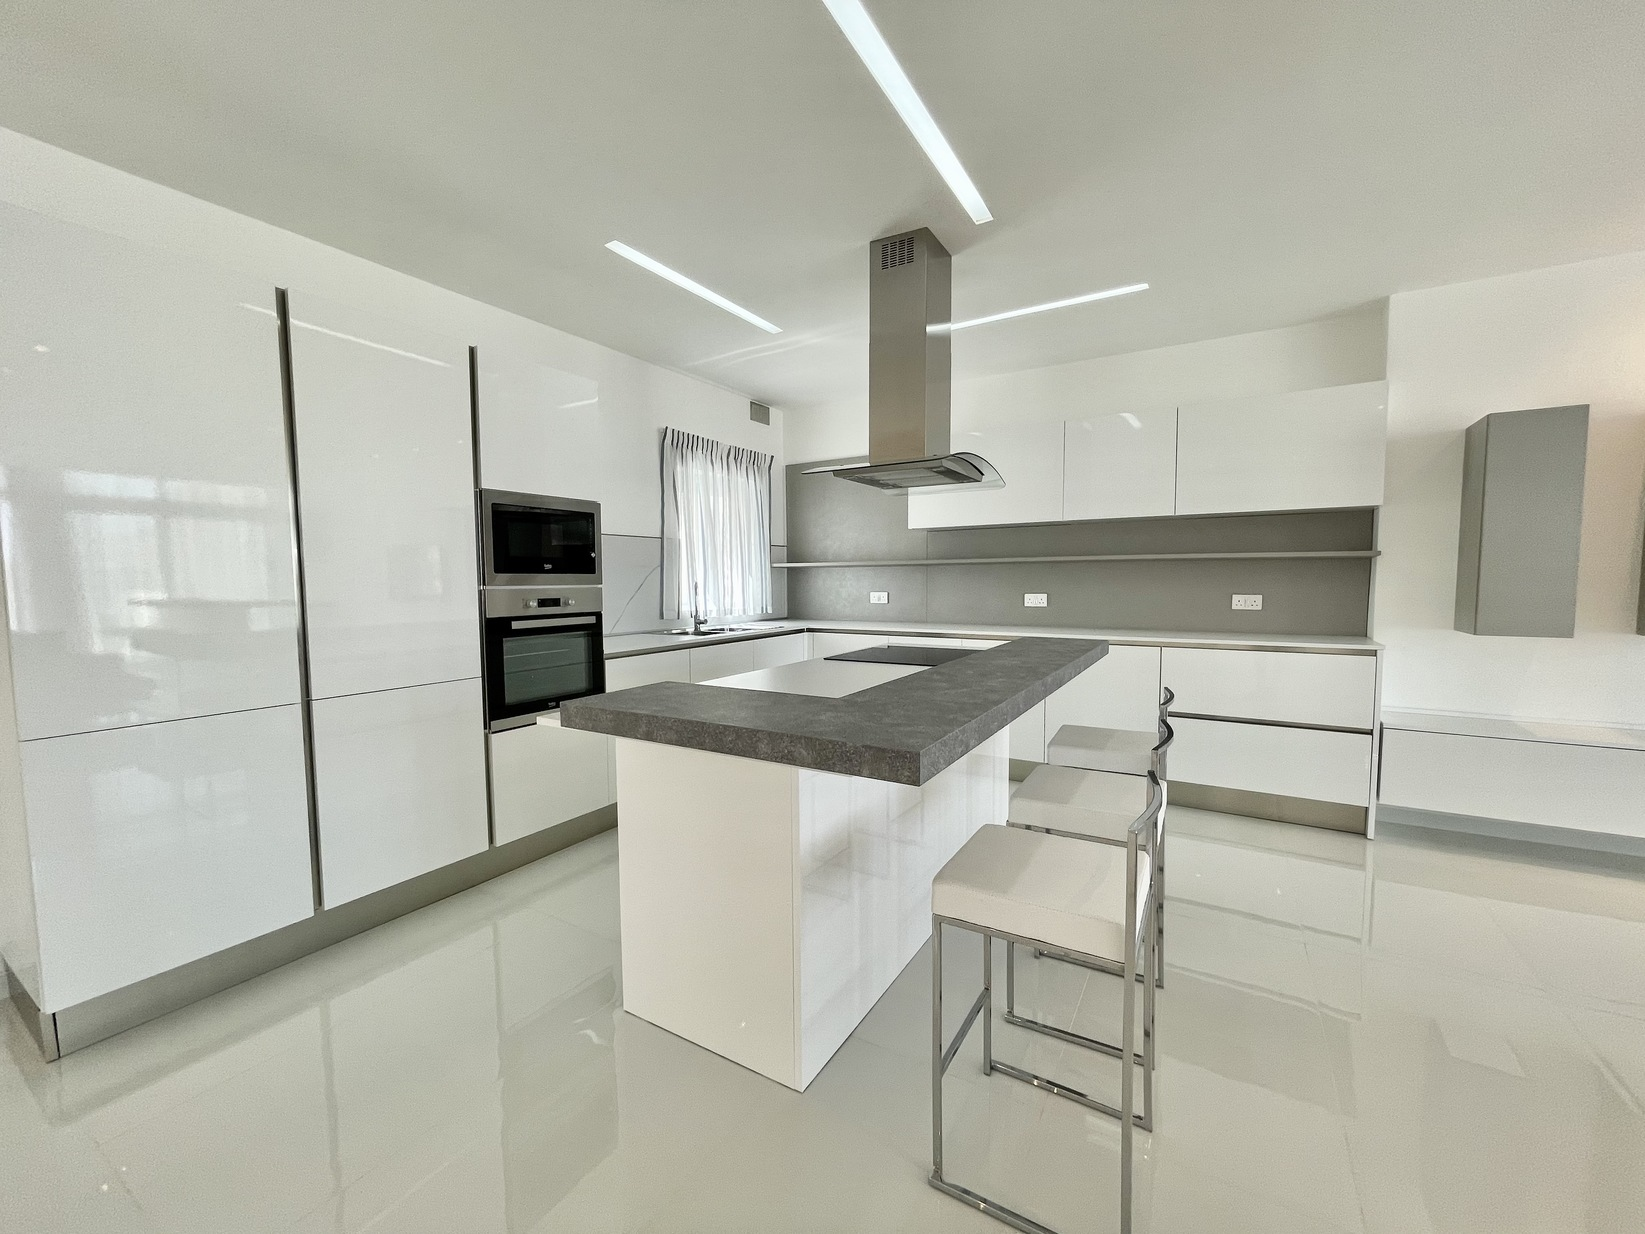 2 bed Penthouse For Rent in Zejtun, Zejtun - thumb 9